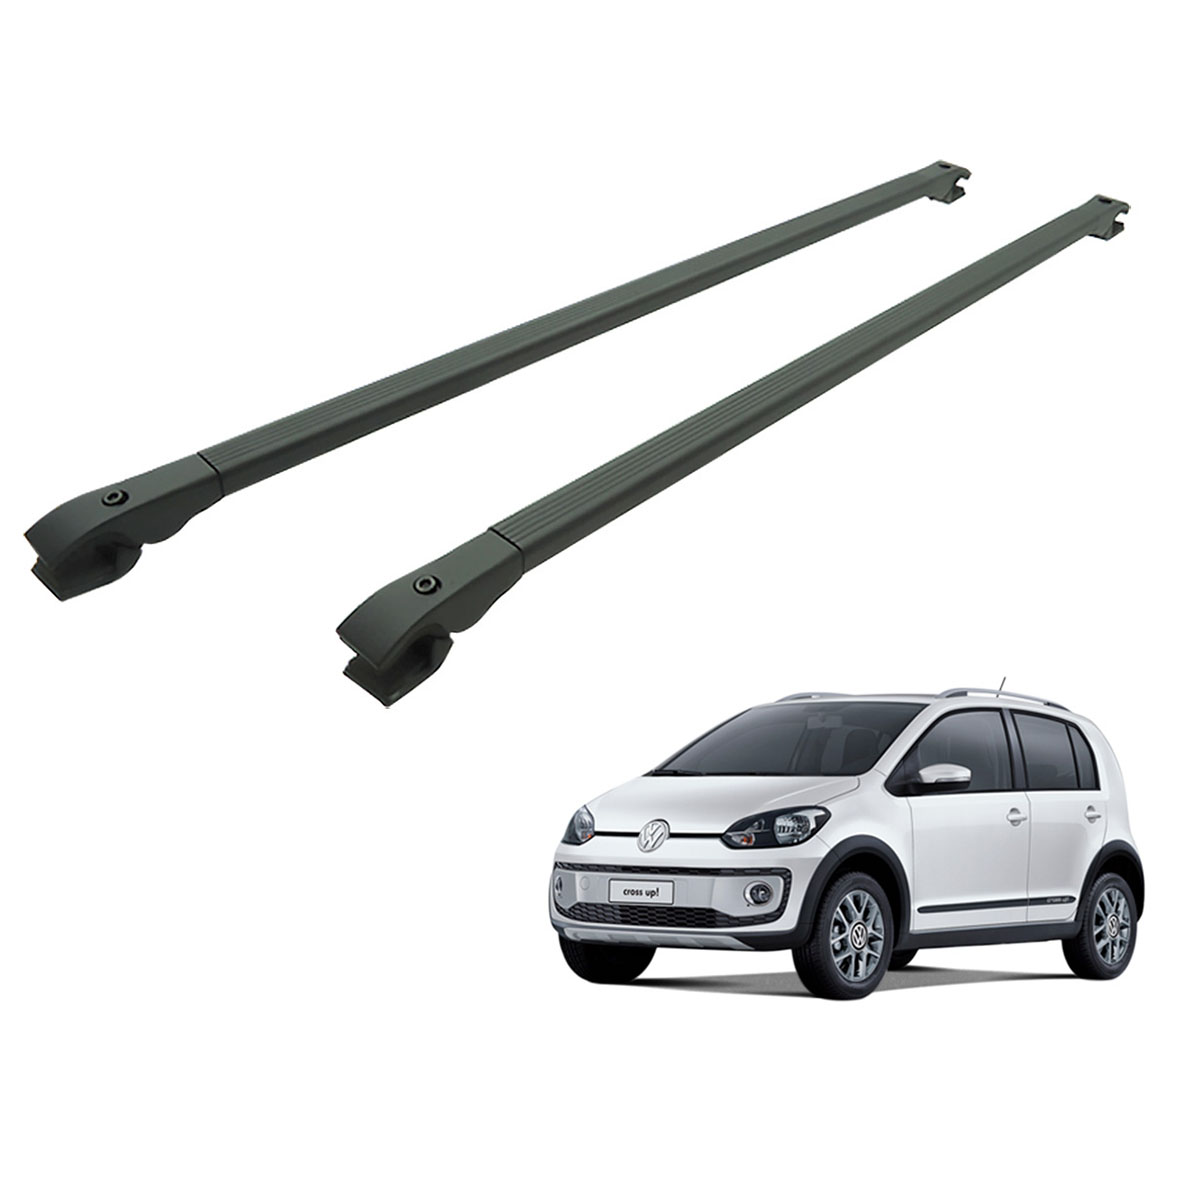 Travessa rack de teto alumínio preta UP! Cross VW up 2014 a 2017